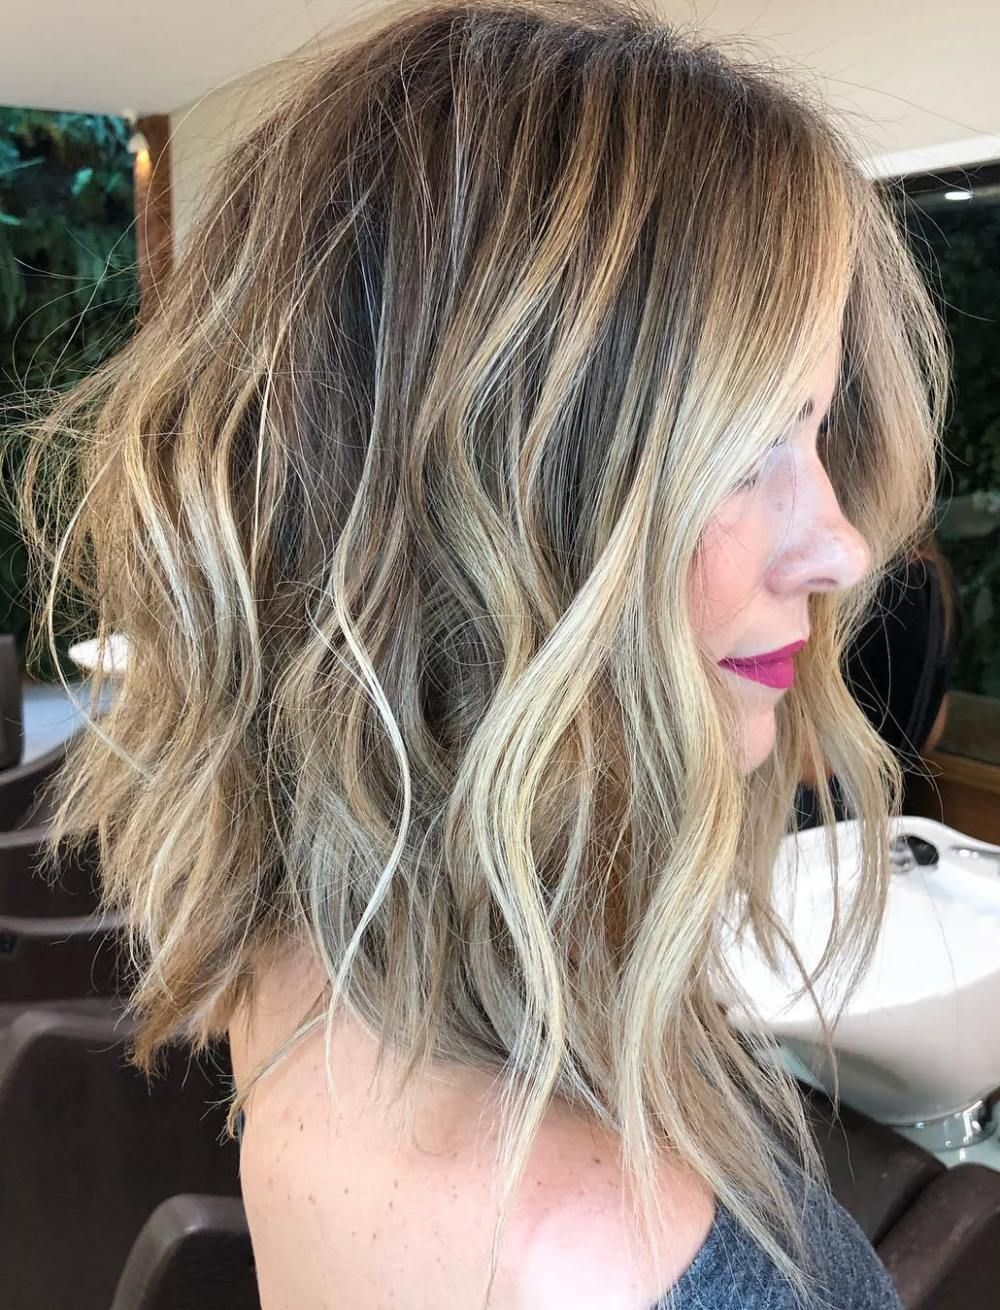 Tousled Wavy Lob With Balayage Highlights  Frisuren haarschnitte